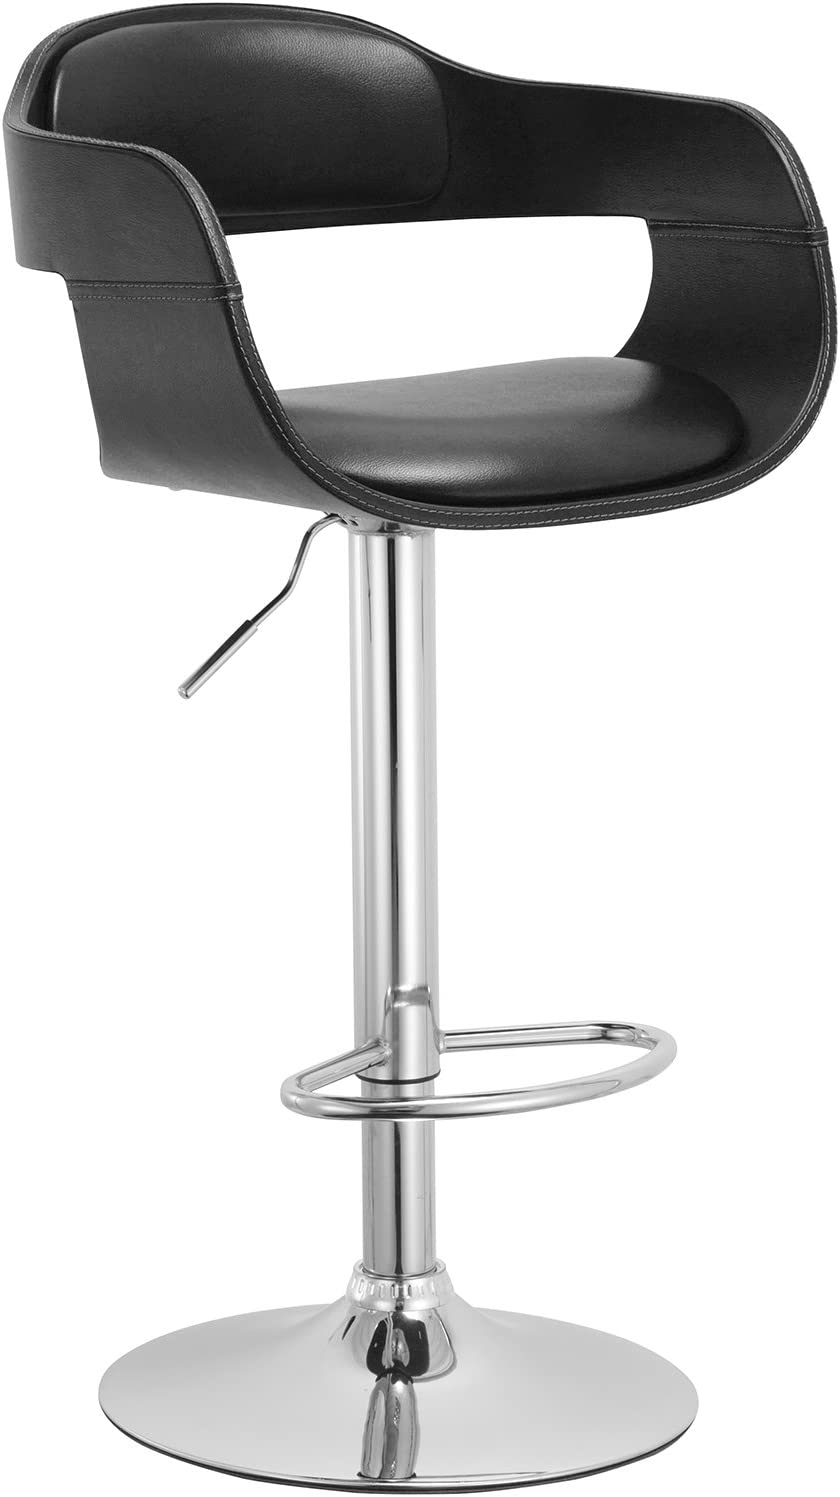 Christies Home Living Contemporary Swivel Adjustable Barstool With Padded Seat Furniture Decor